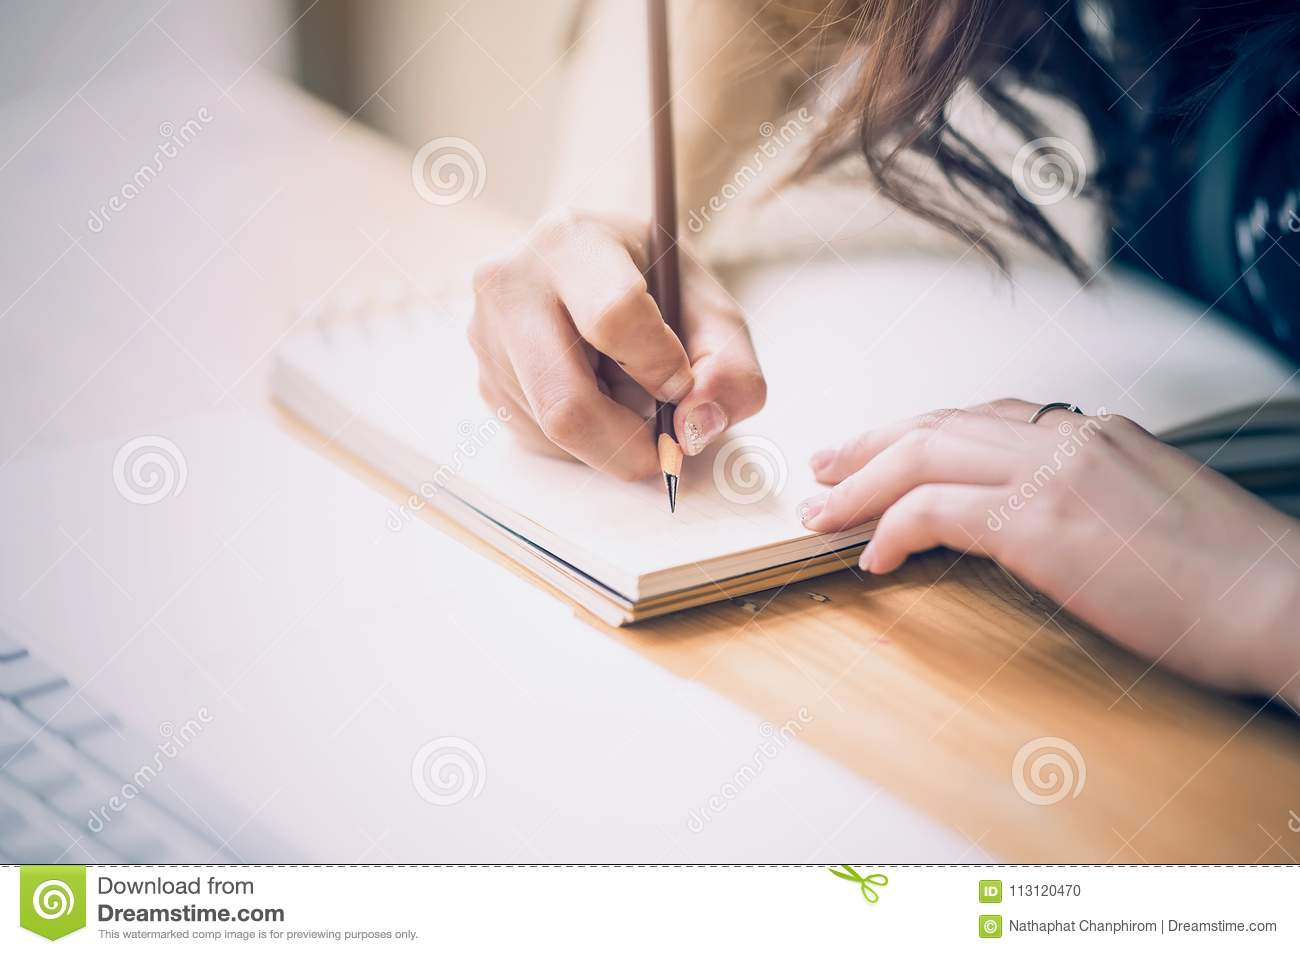 Close up of female designer hands at workplace drawing something